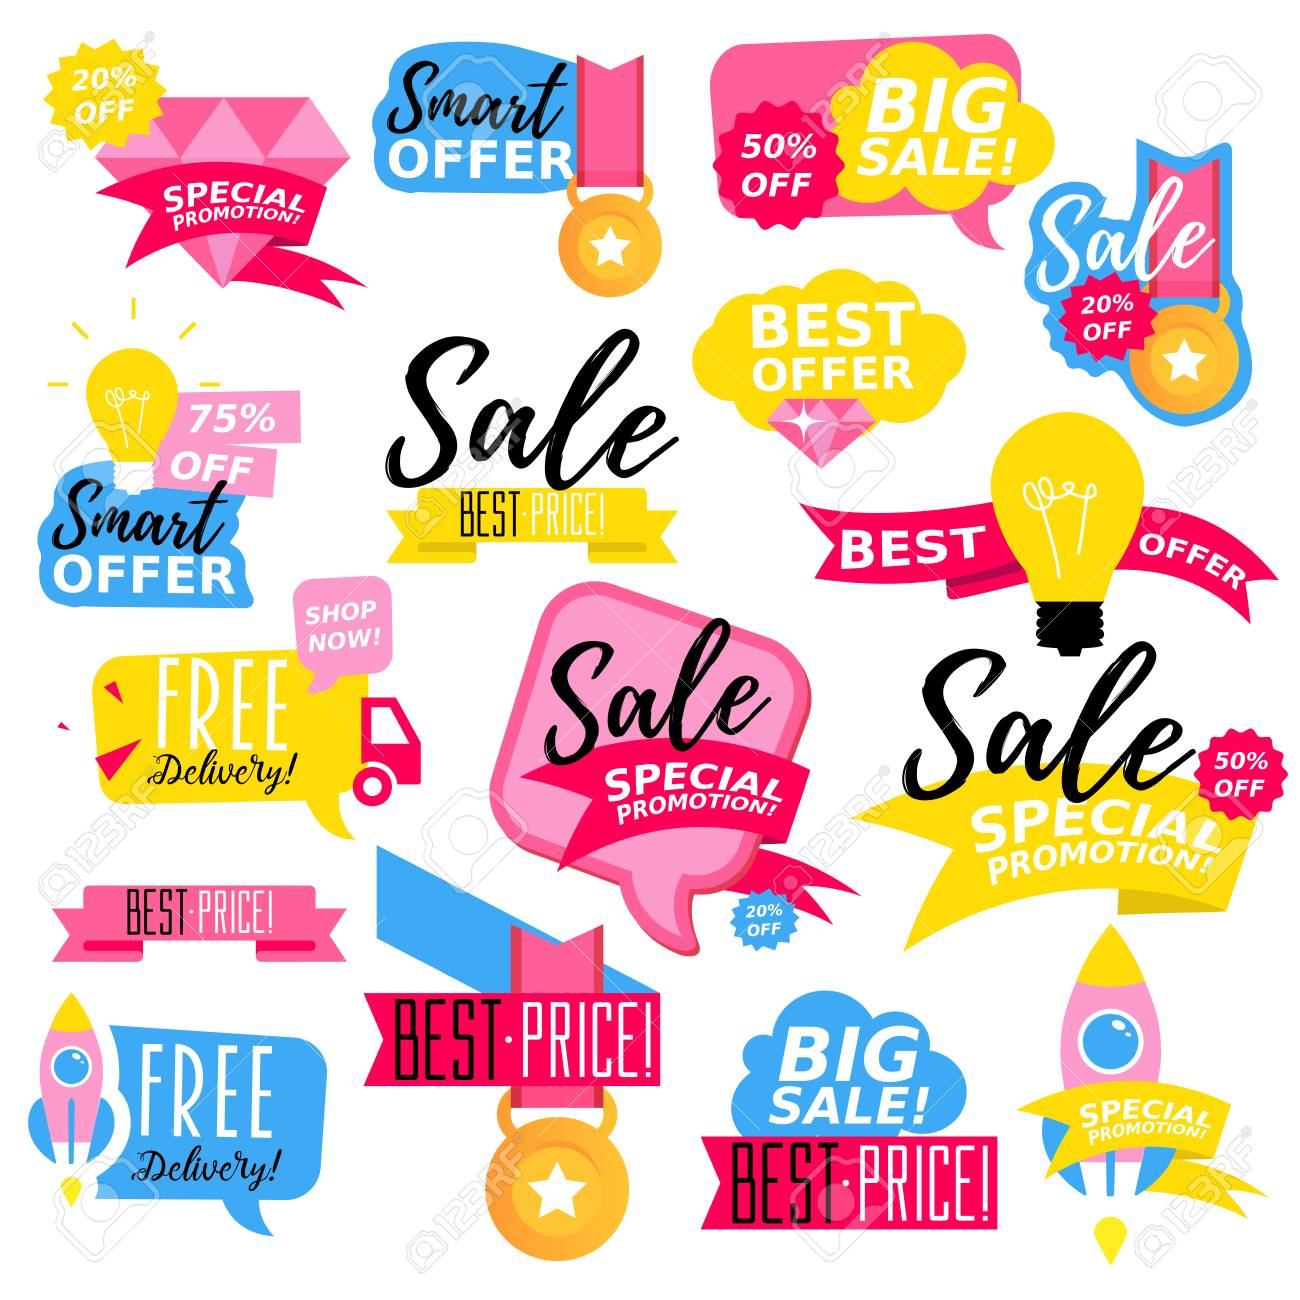 Flat design colorful sale stickers collection online shopping sale and promotion website and